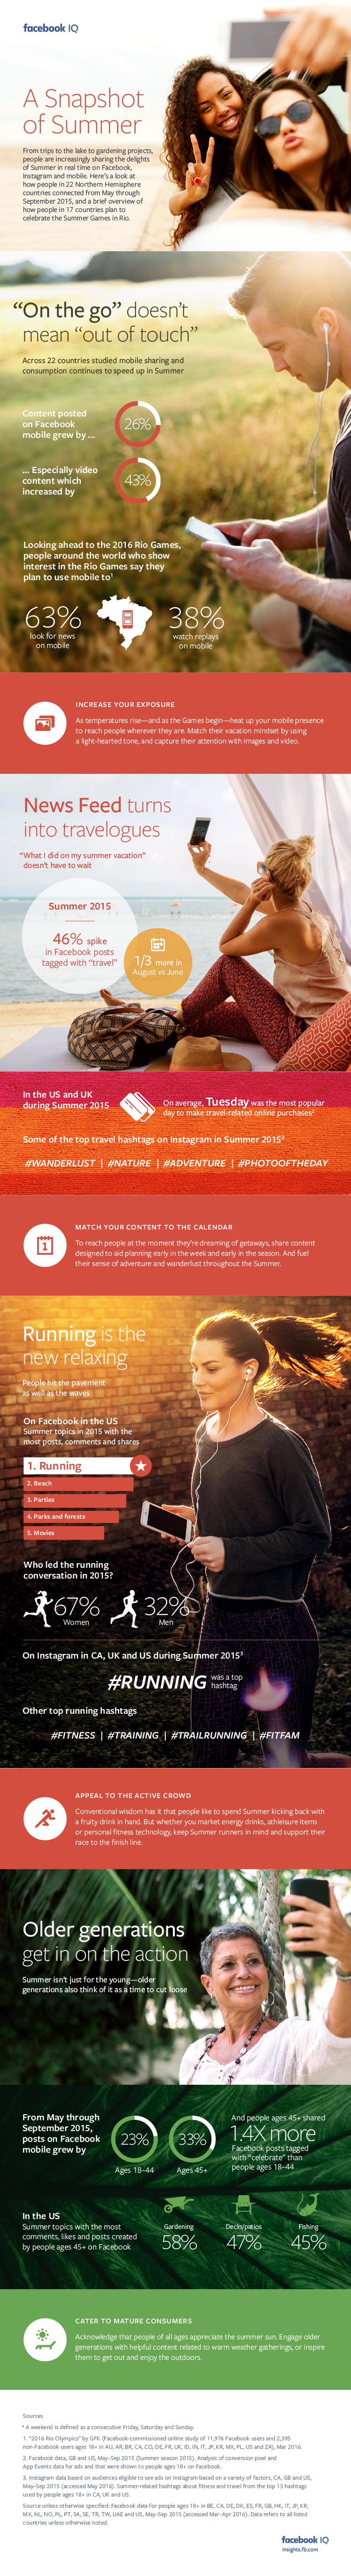 infograph on summer use of facebook   post during summer vacation